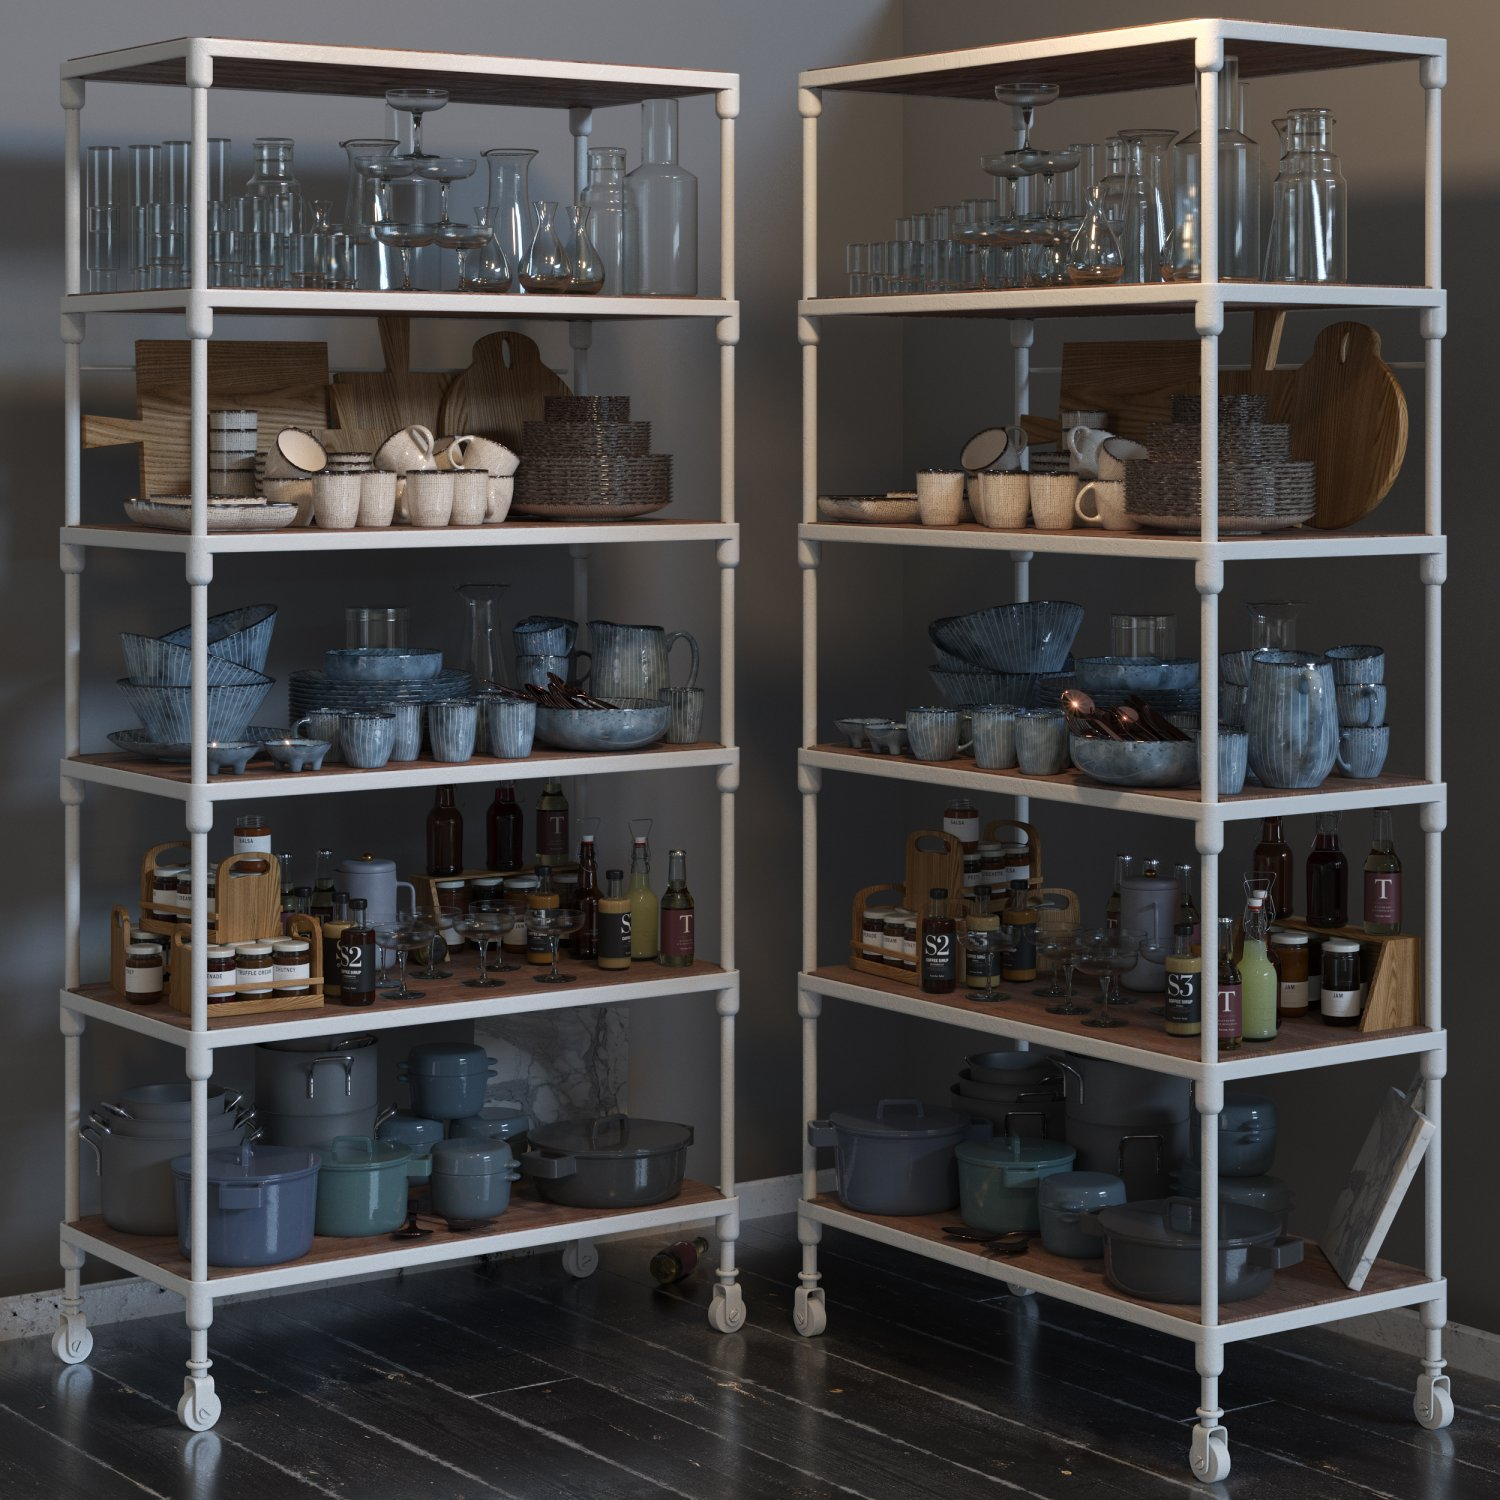 Rh Dutch Industrial Single Shelving And Kitchen Set 3d Modell In